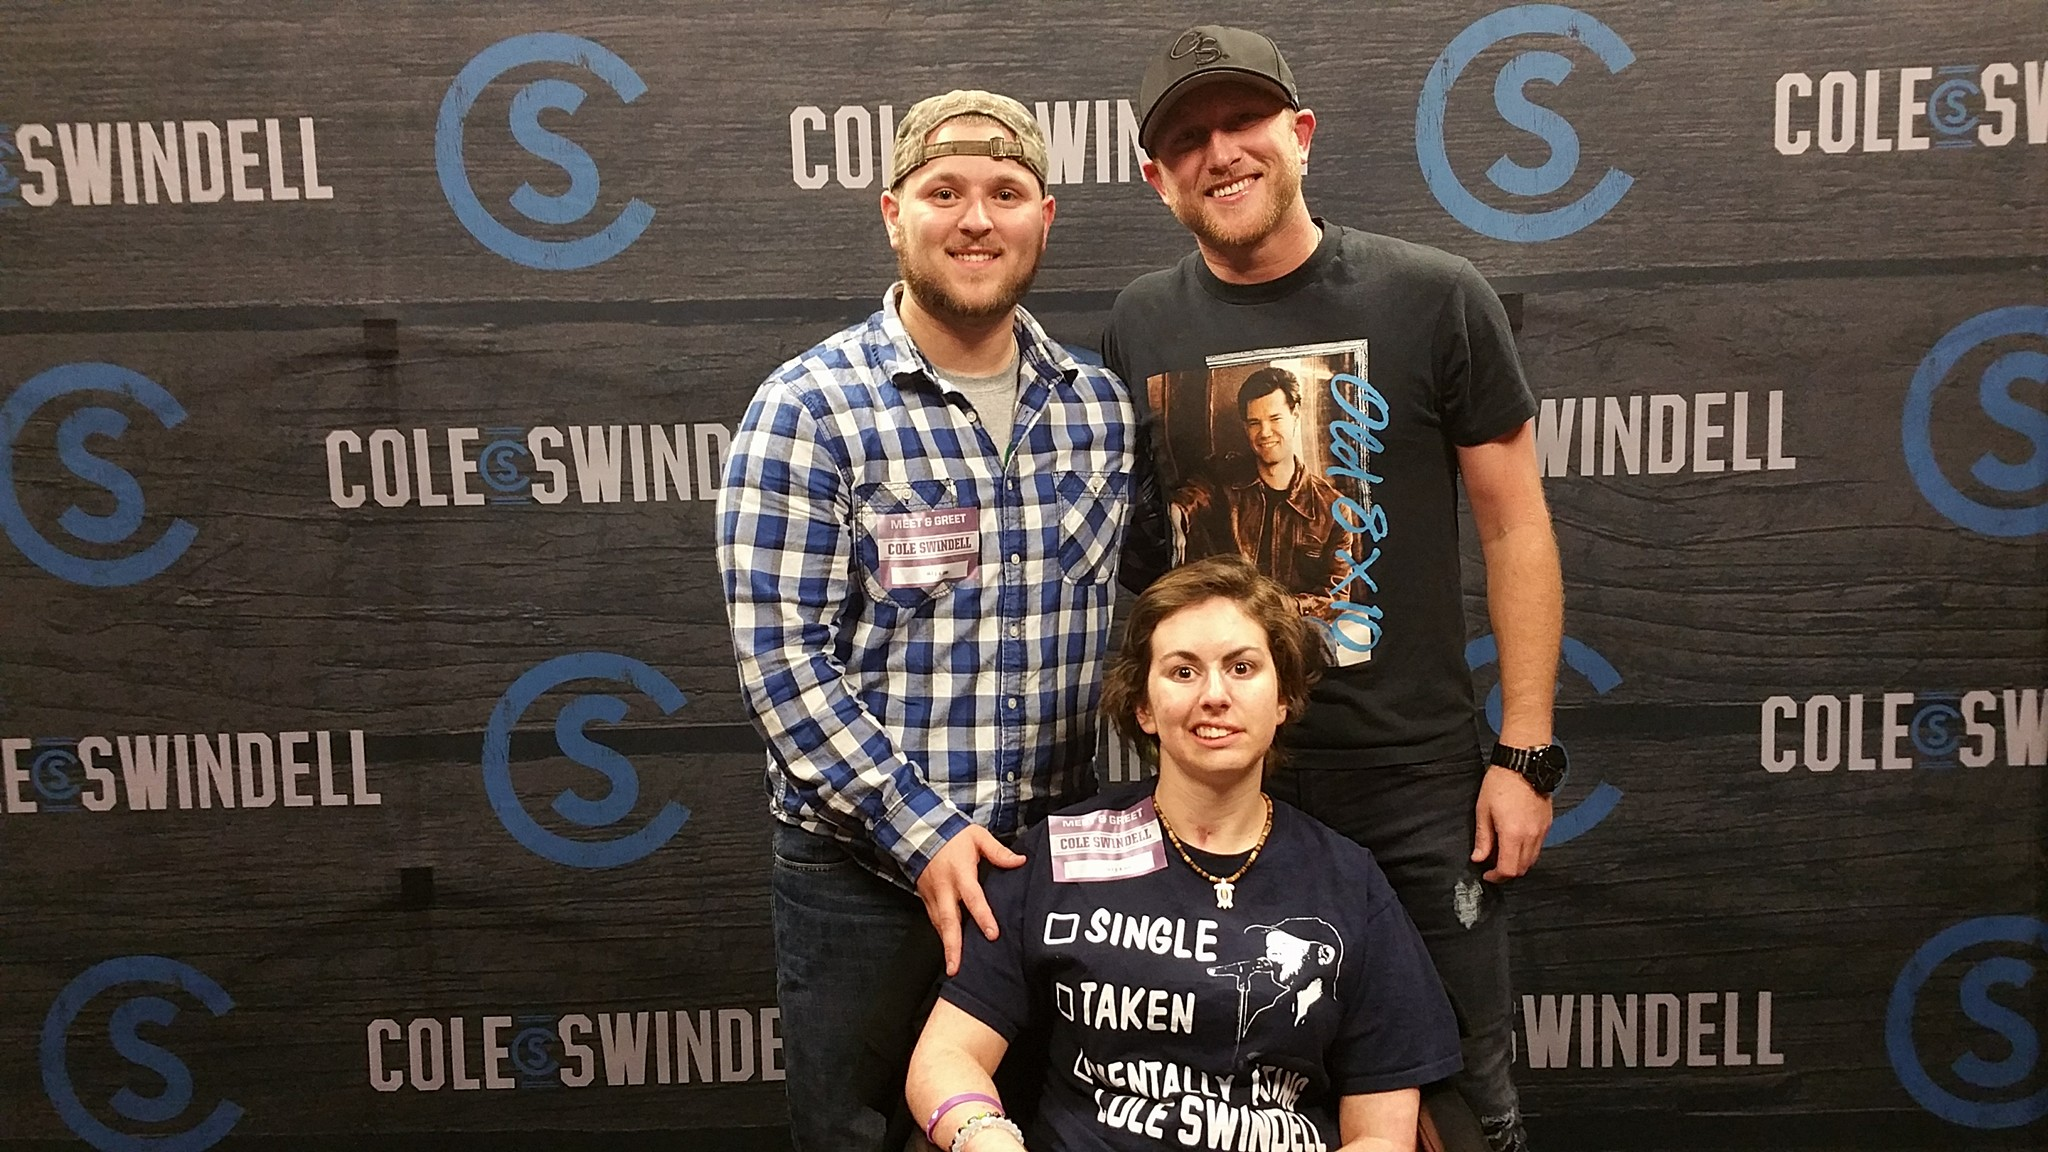 Cole swindell gives fan with brain injury remarkable evening cole swindell gives fan with brain injury remarkable evening sounds like nashville kristyandbryce Images